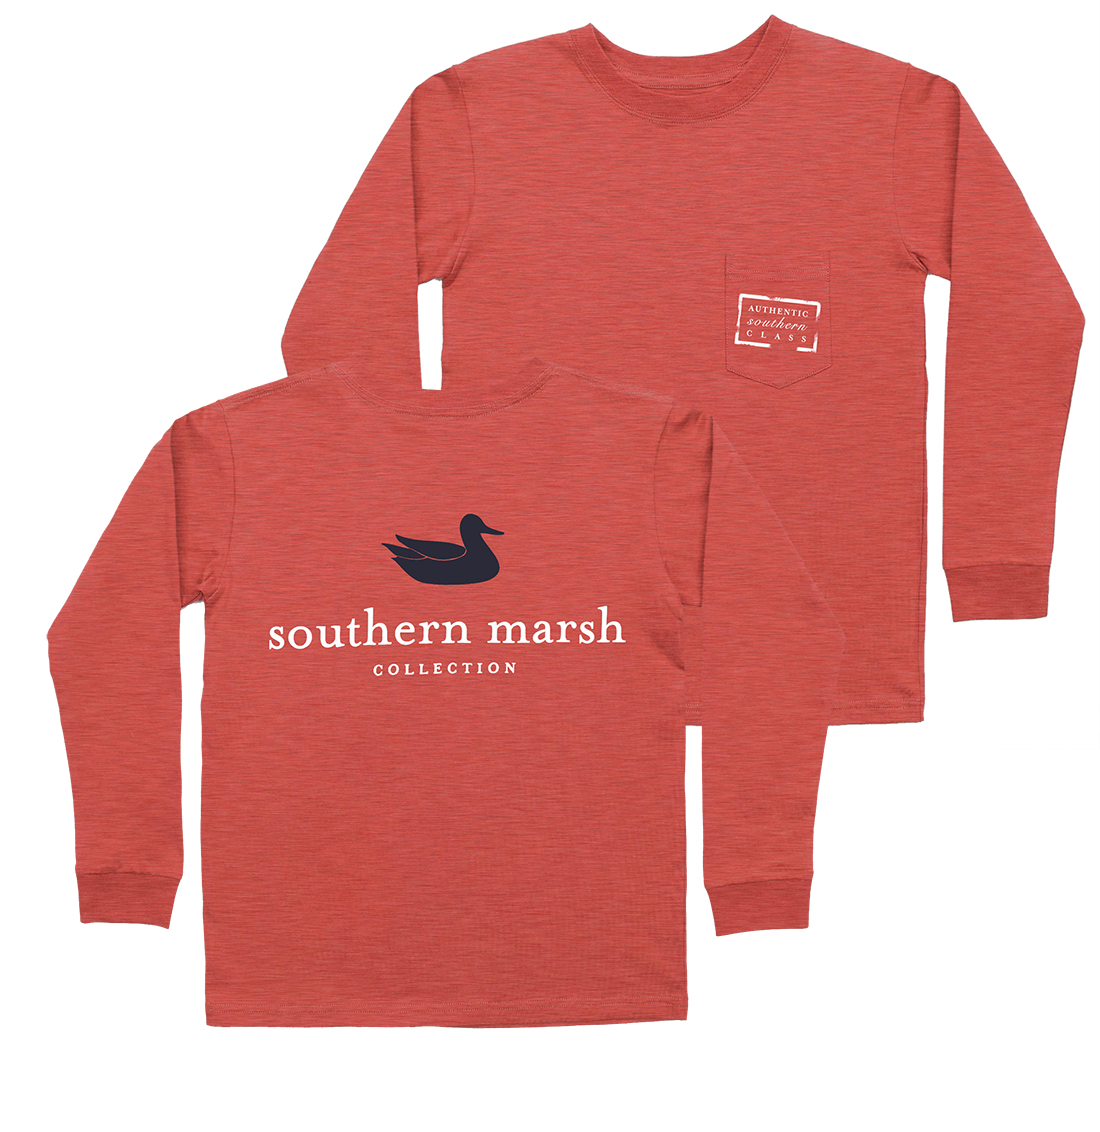 Southern marsh youth authentic long sleeve tee ebay for Southern marsh dress shirts on sale